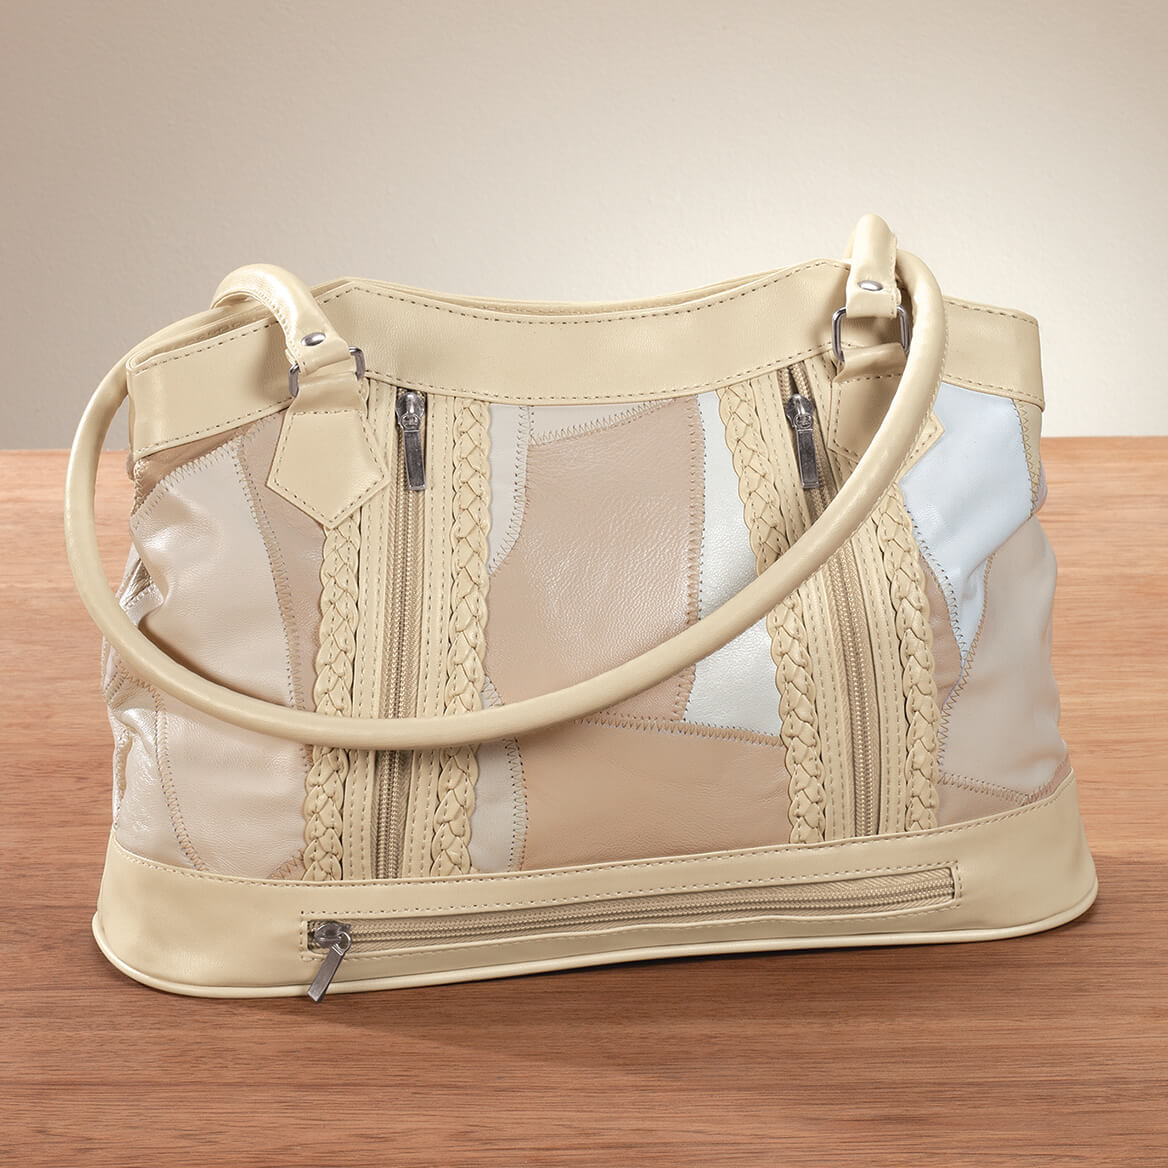 Five Pocket Cream Patch Leather Shoulder Bag-369224